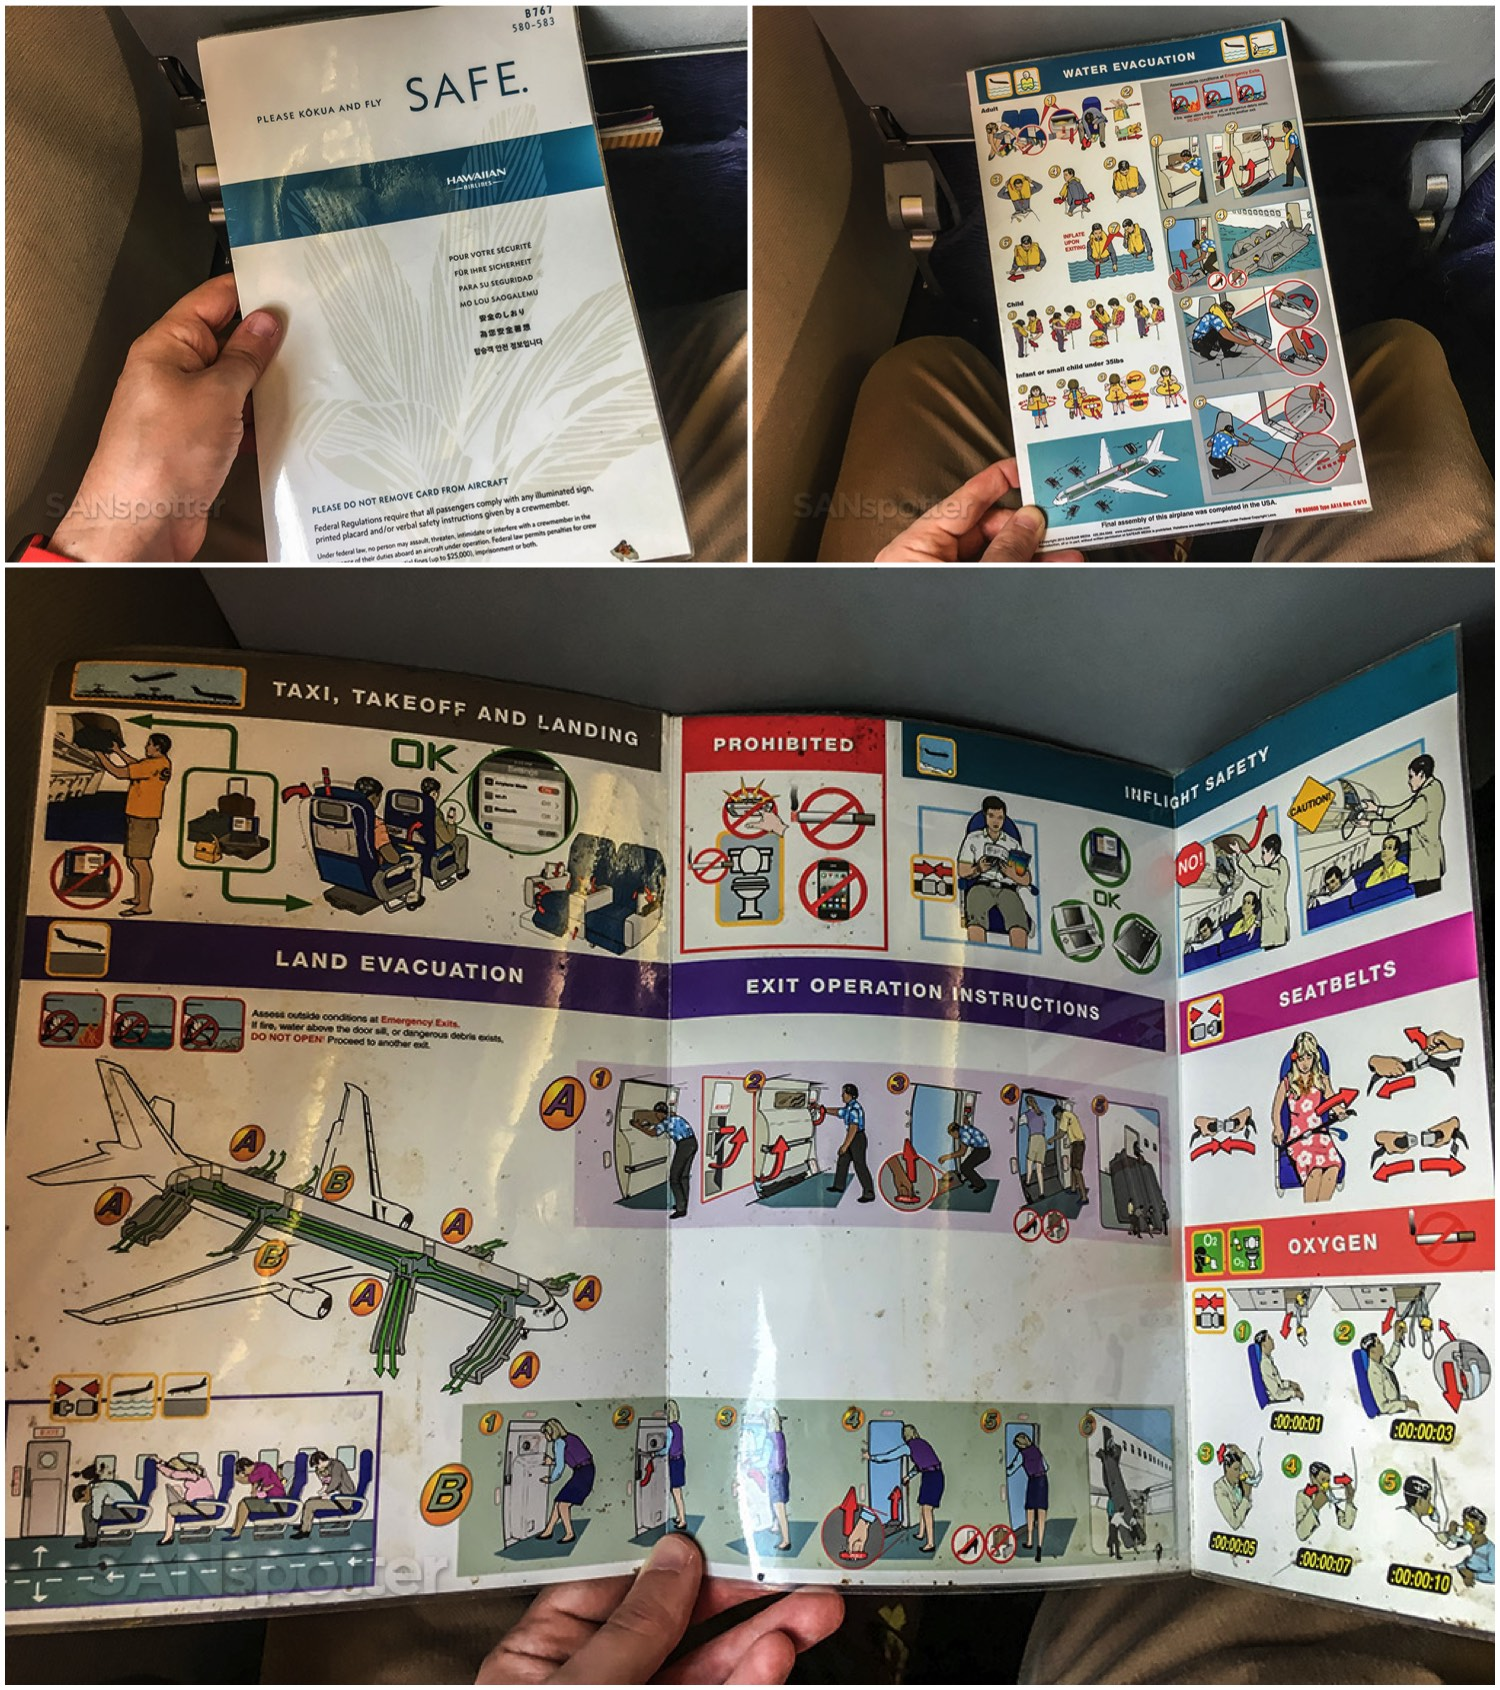 Hawaiian Airlines 767-300 safety card